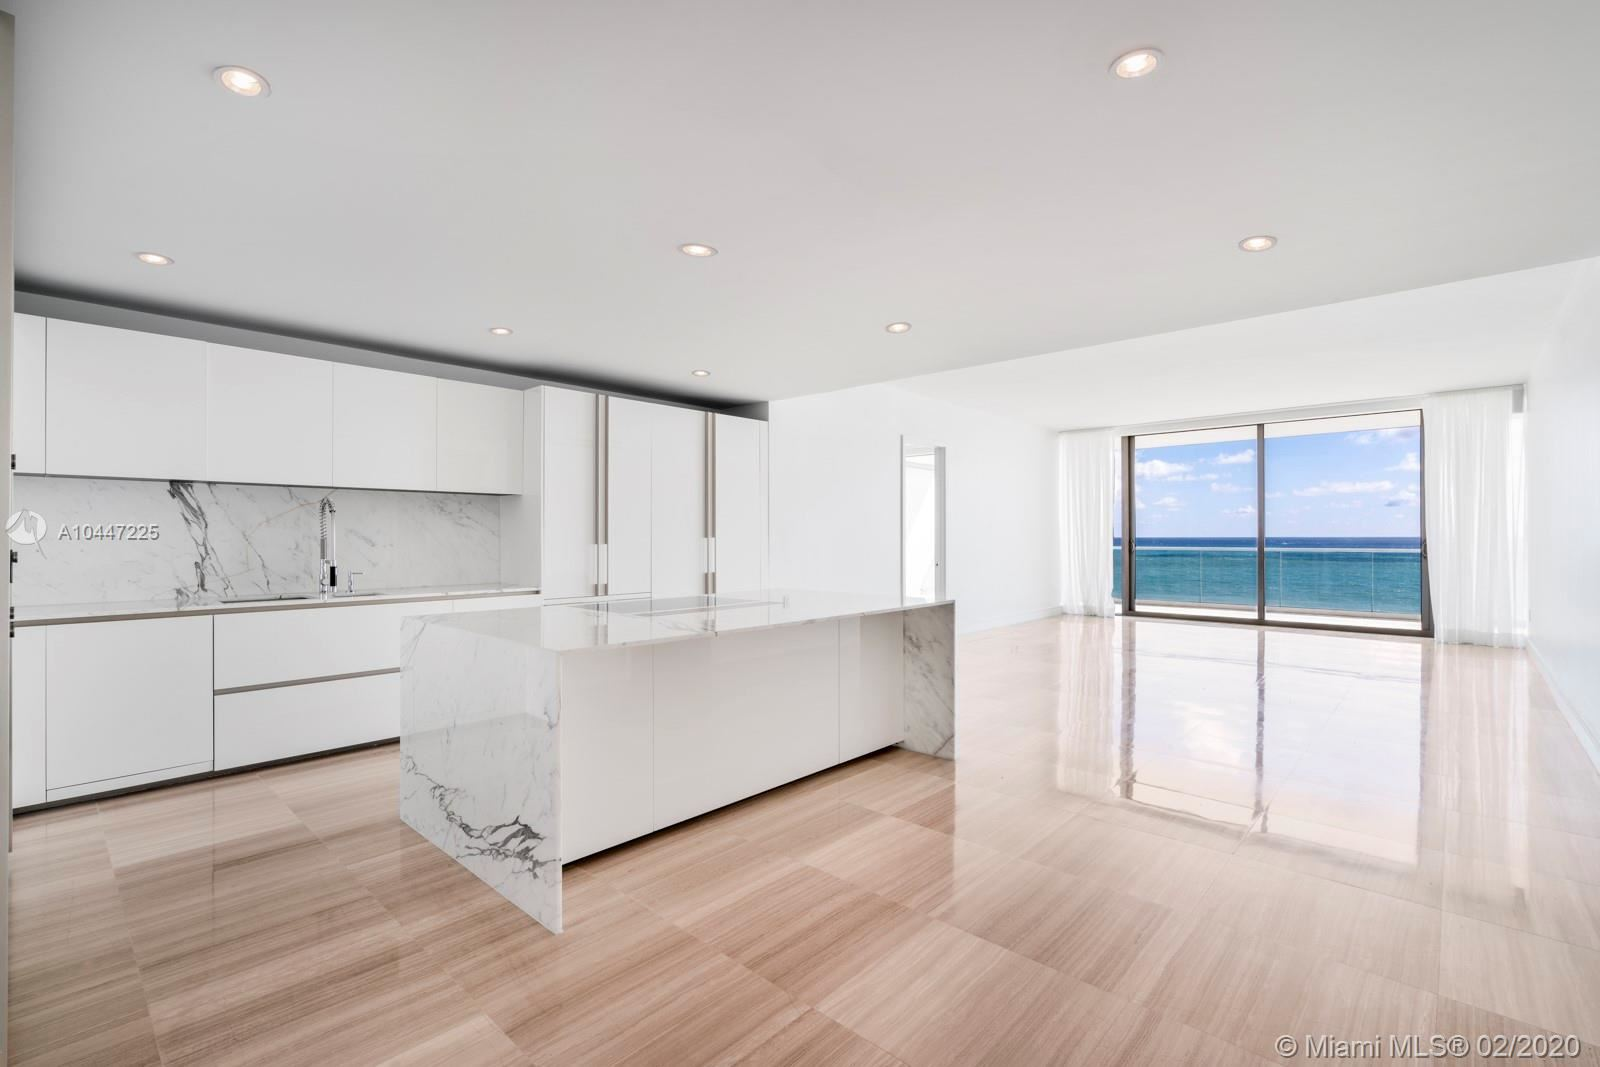 10203 Collins Ave #902N, Bal Harbour, FL 33154 - #: A10447225